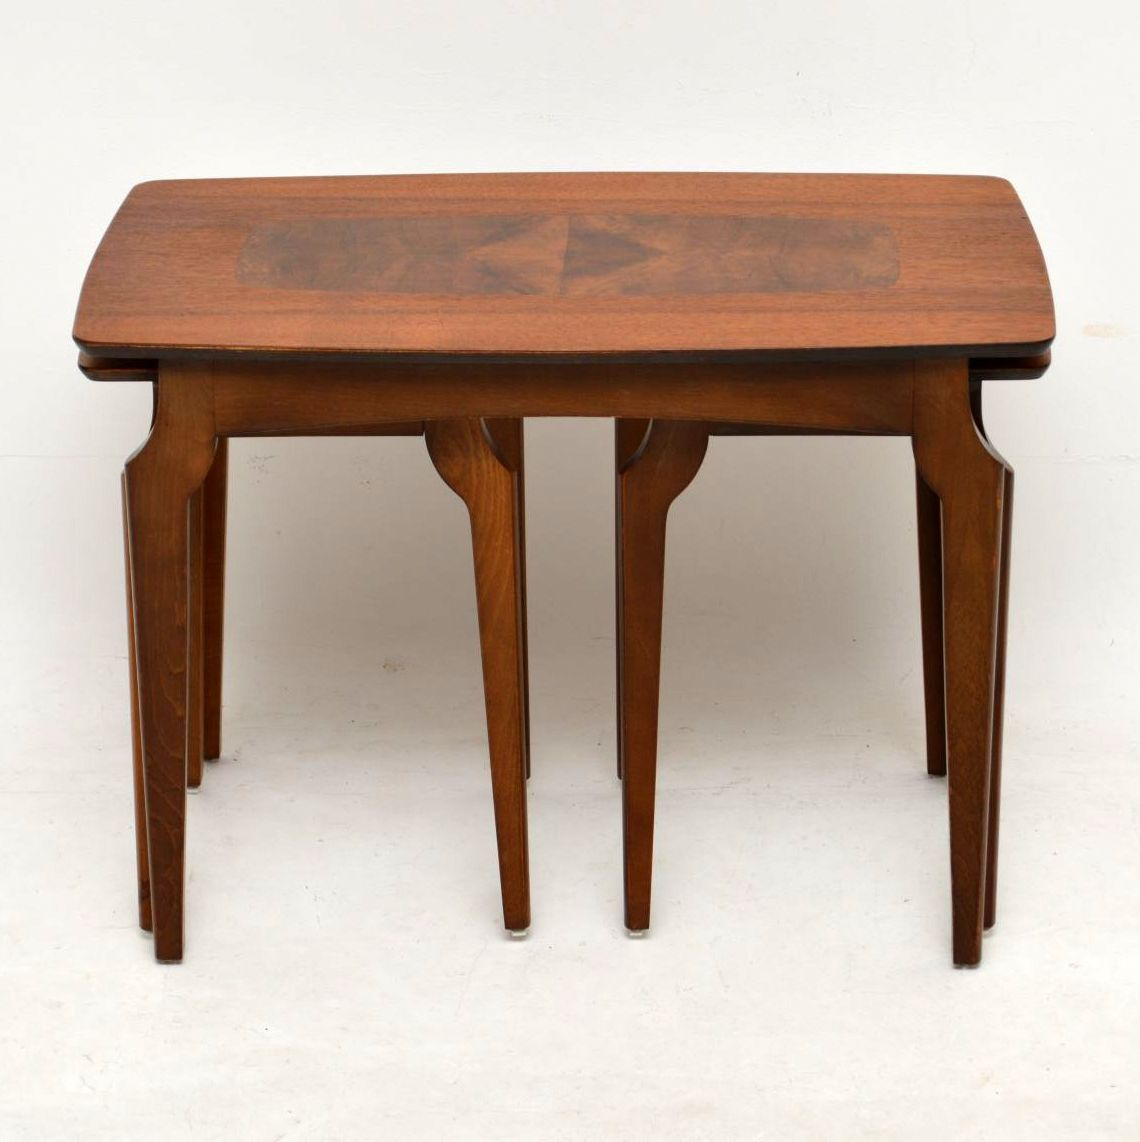 Coffee Table 1950s: 1950's Vintage Nesting Coffee Table In Walnut